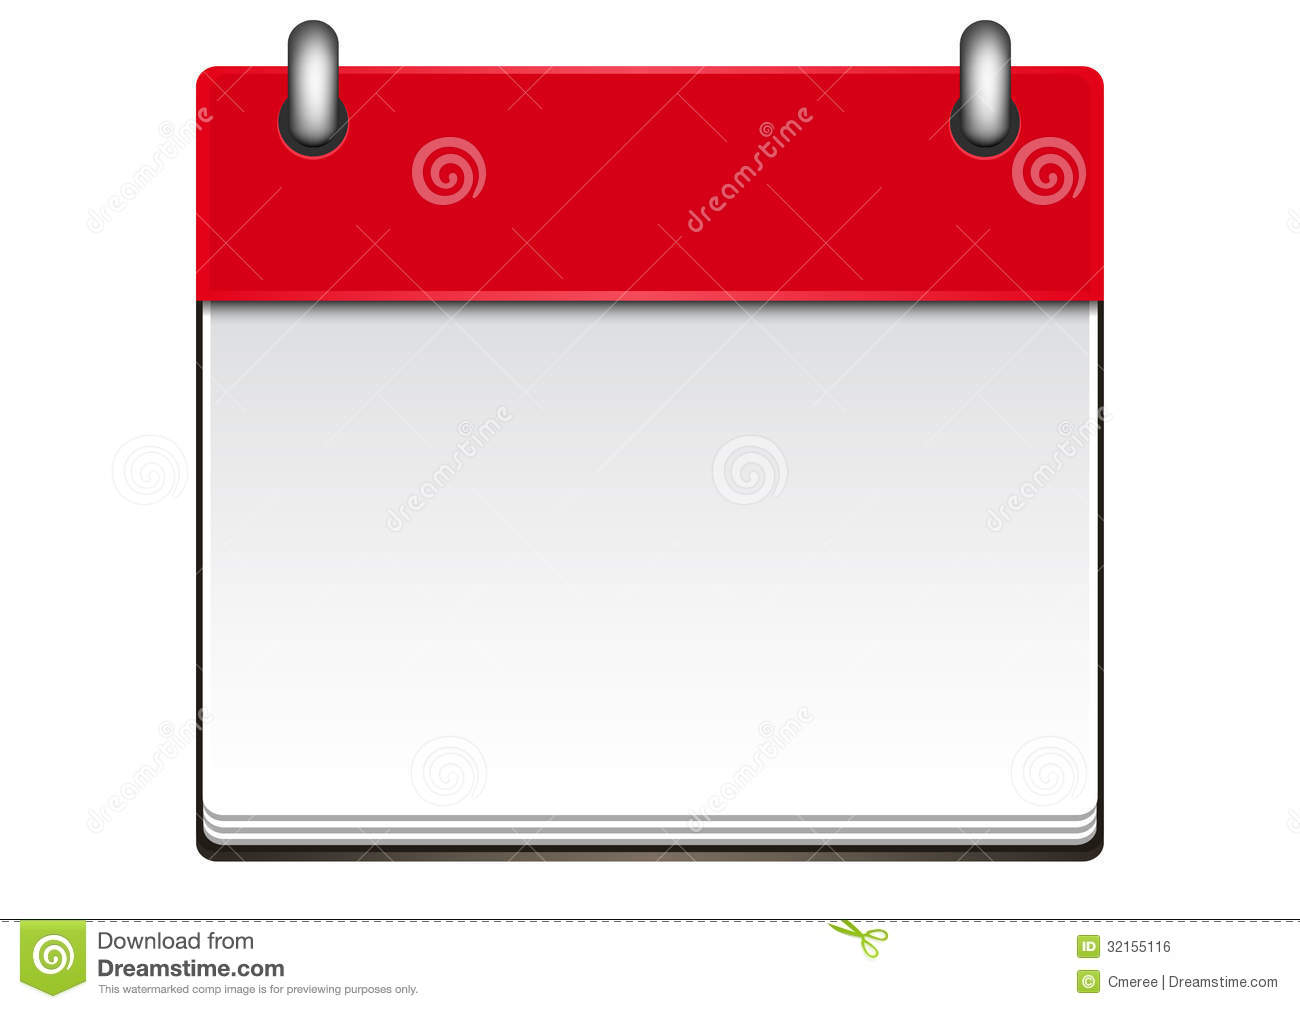 Calendar Template Royalty Free Stock Image - Image: 32155116